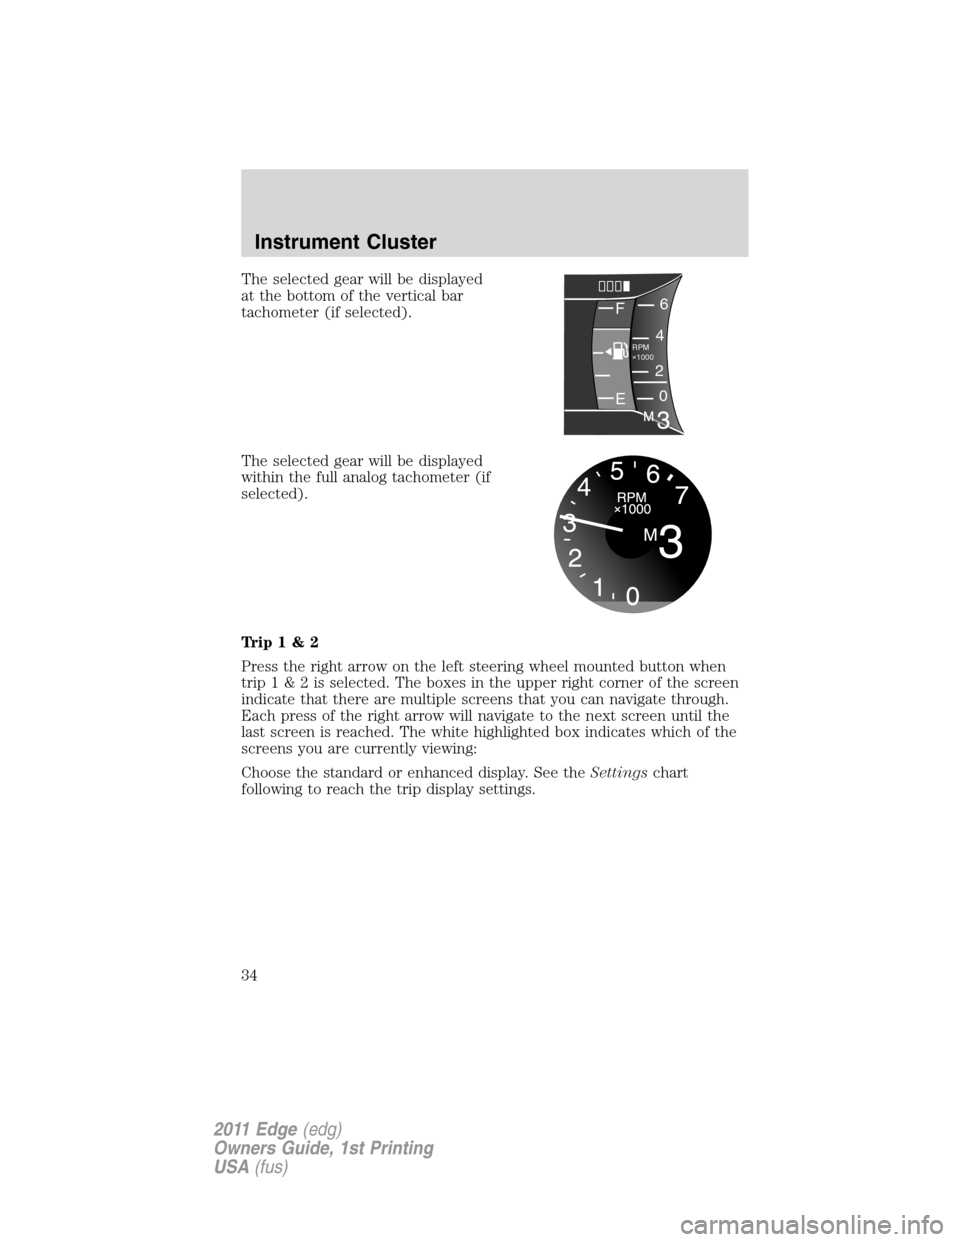 FORD EDGE 2011 1.G Owners Manual, Page 34